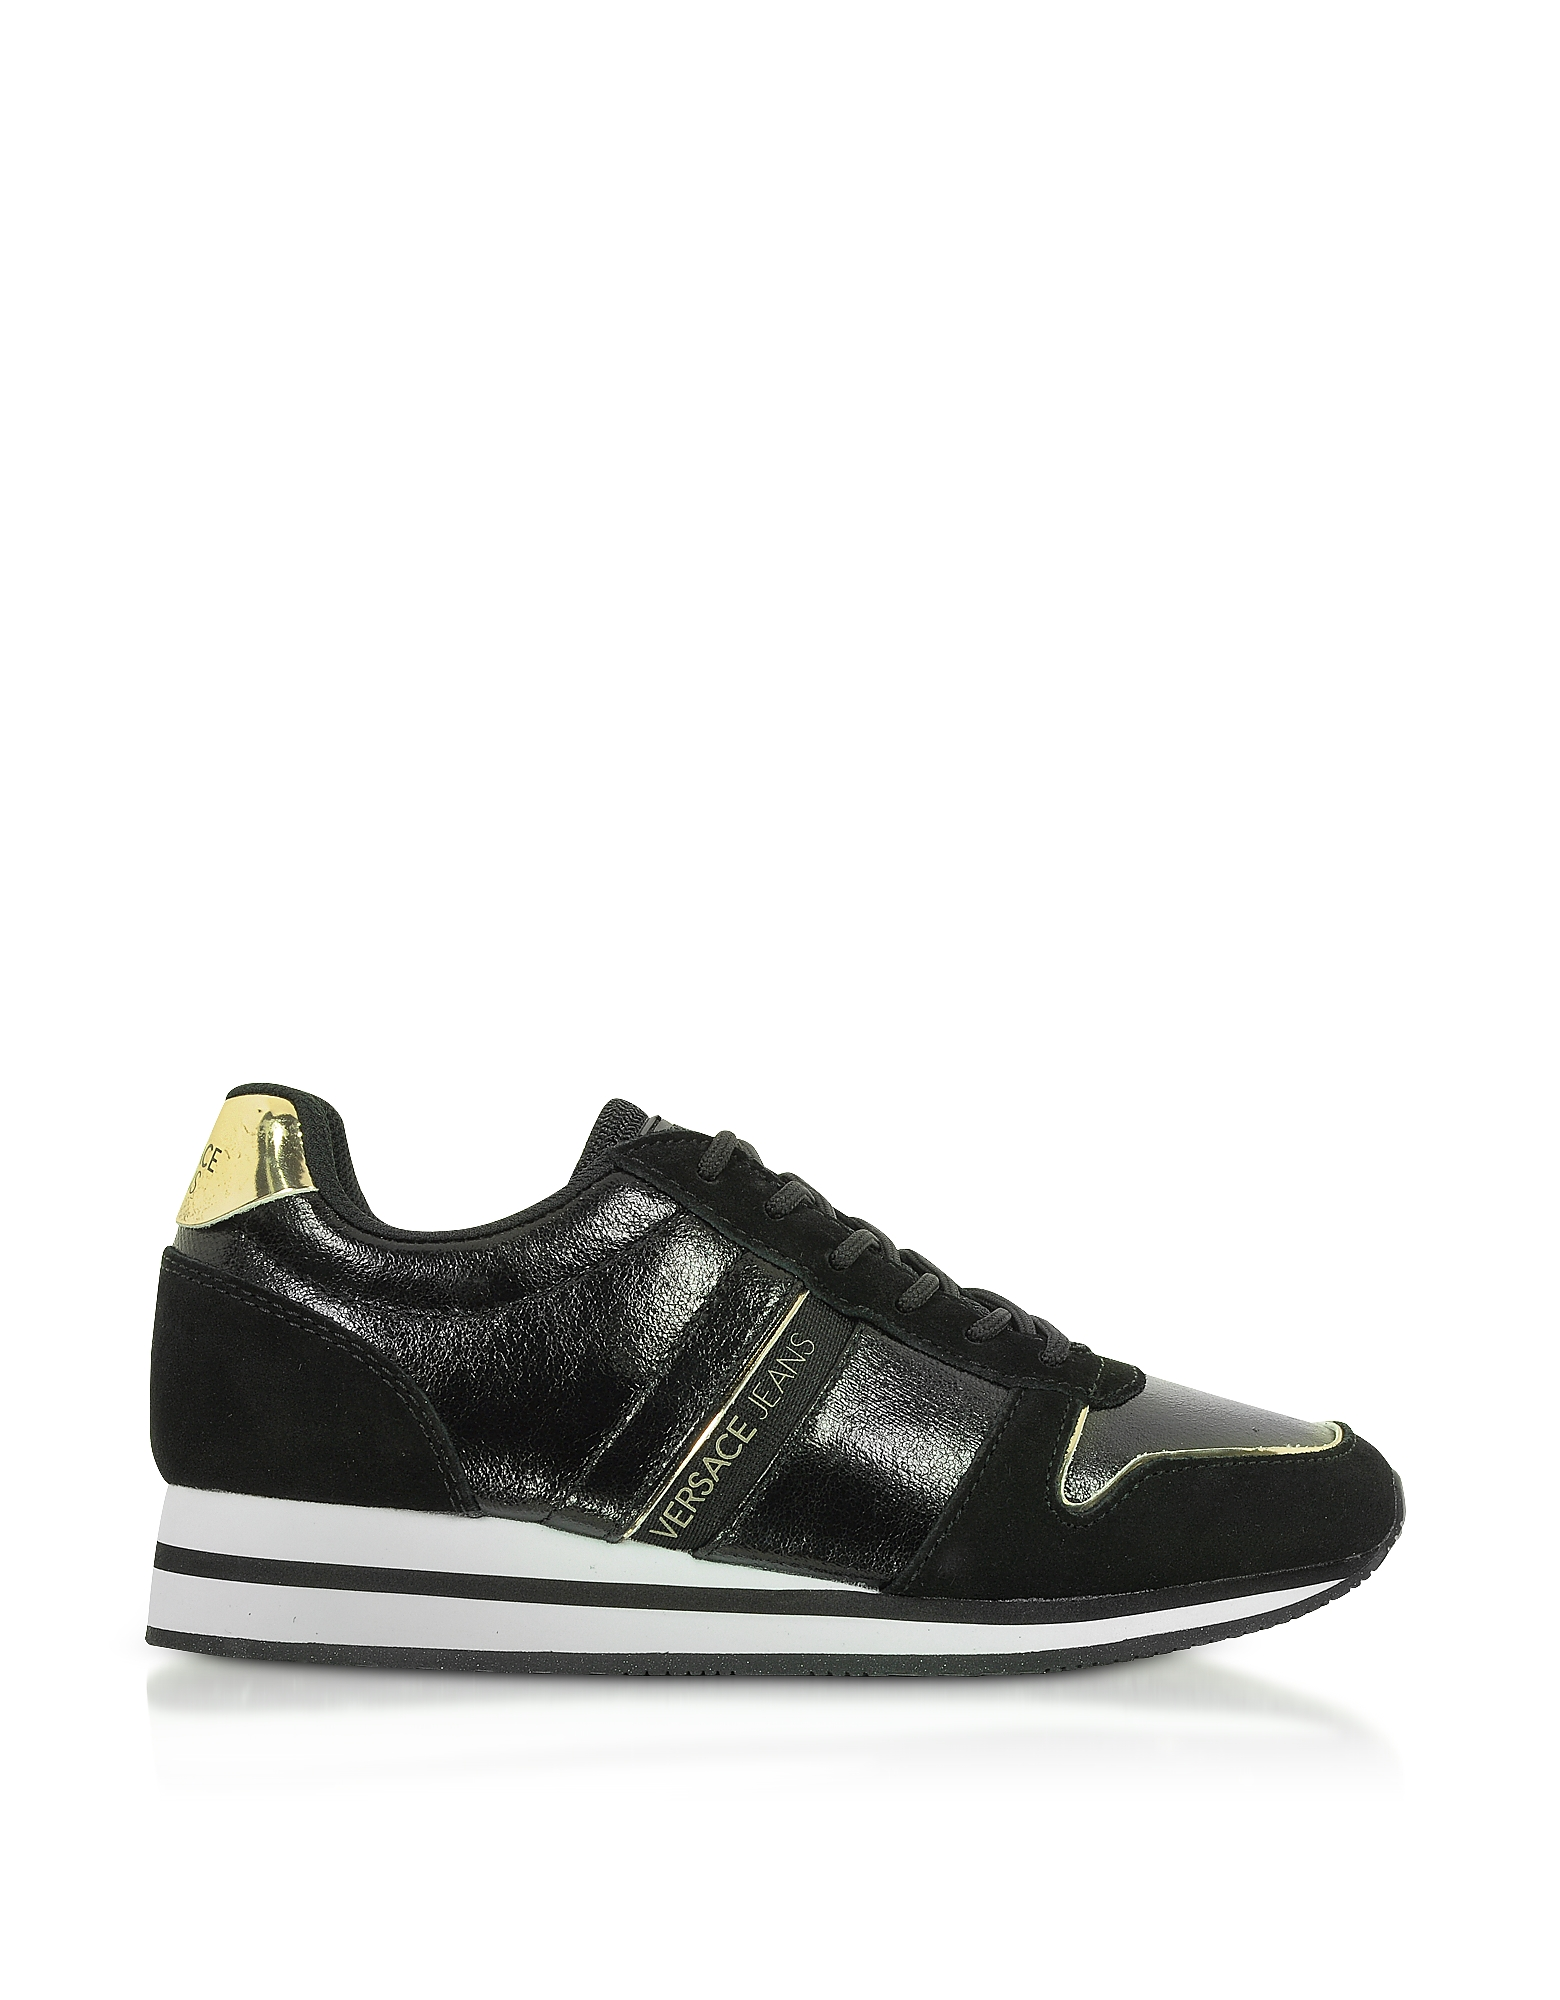 Versace Jeans Designer Shoes, Stella Black Coated Canvas & Suede Sneakers